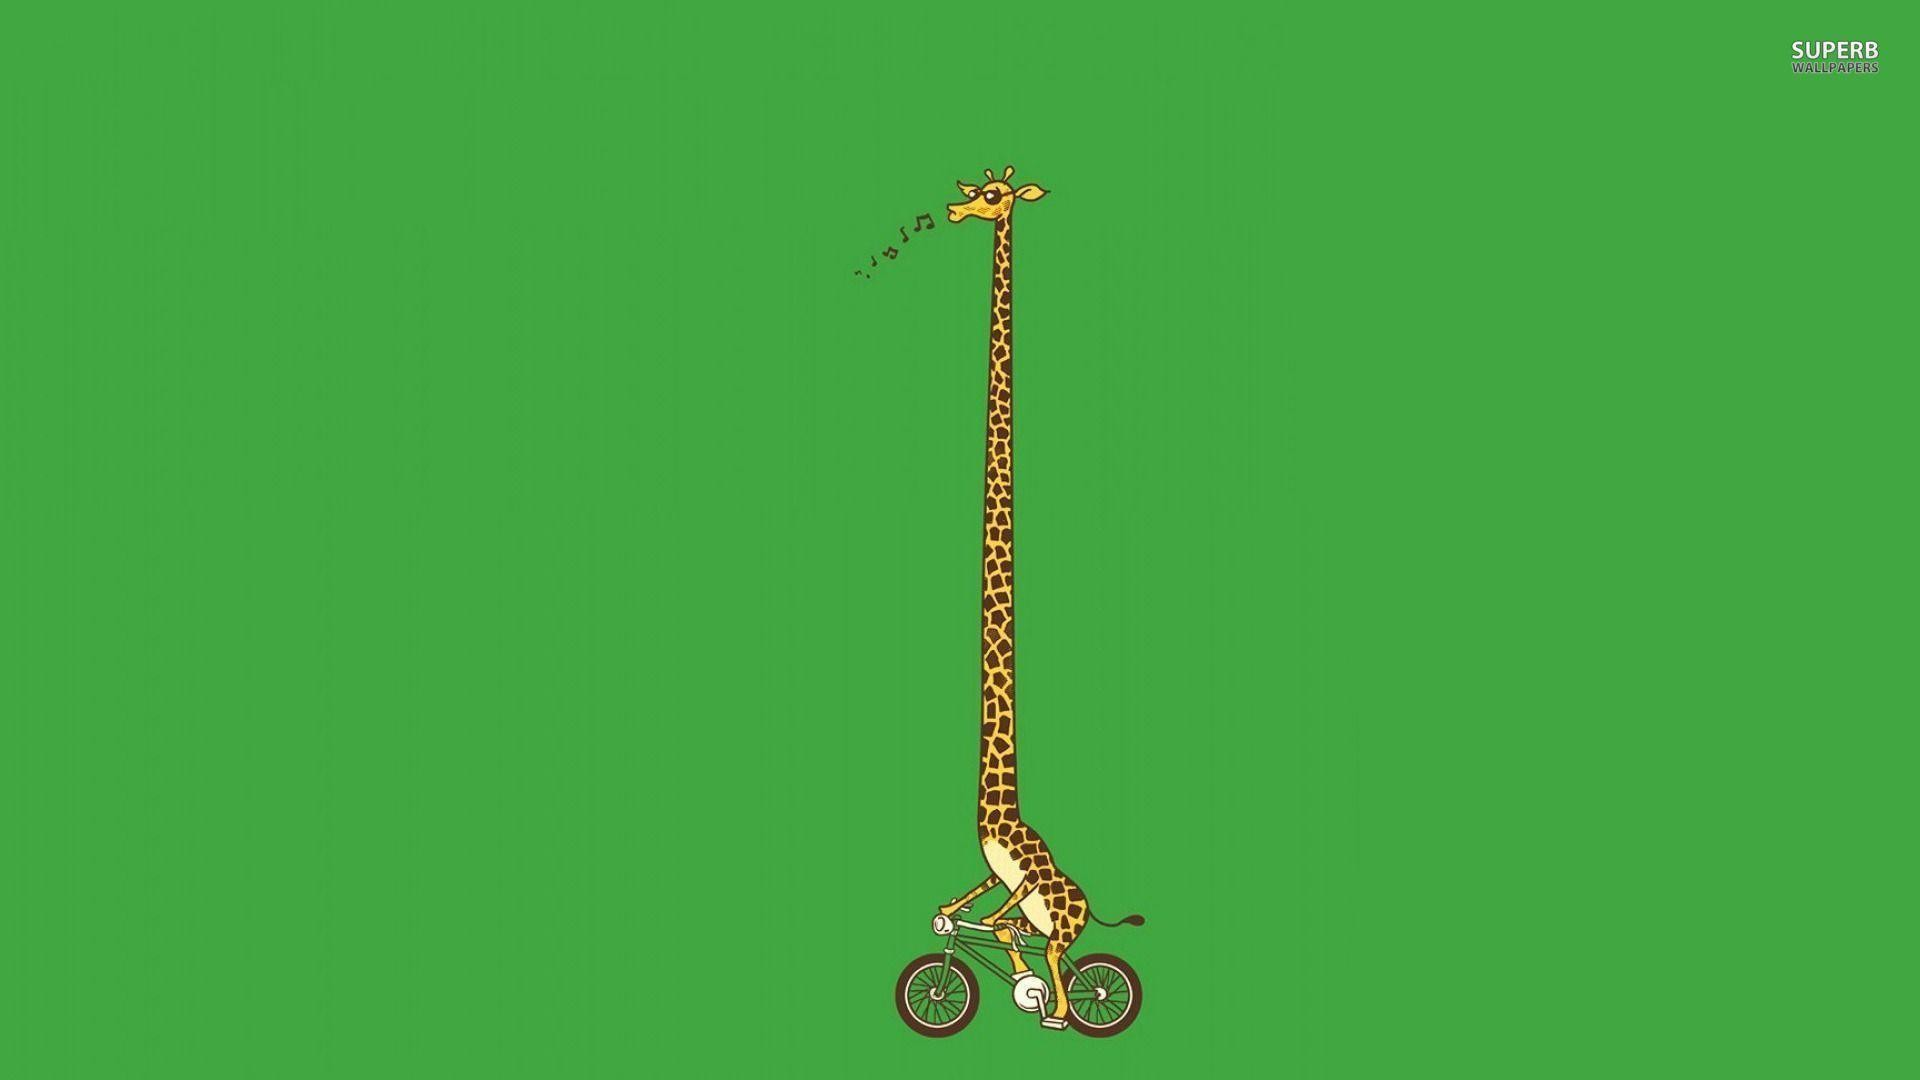 1920x1080 Biking giraffe wallpaper - Funny wallpapers - #